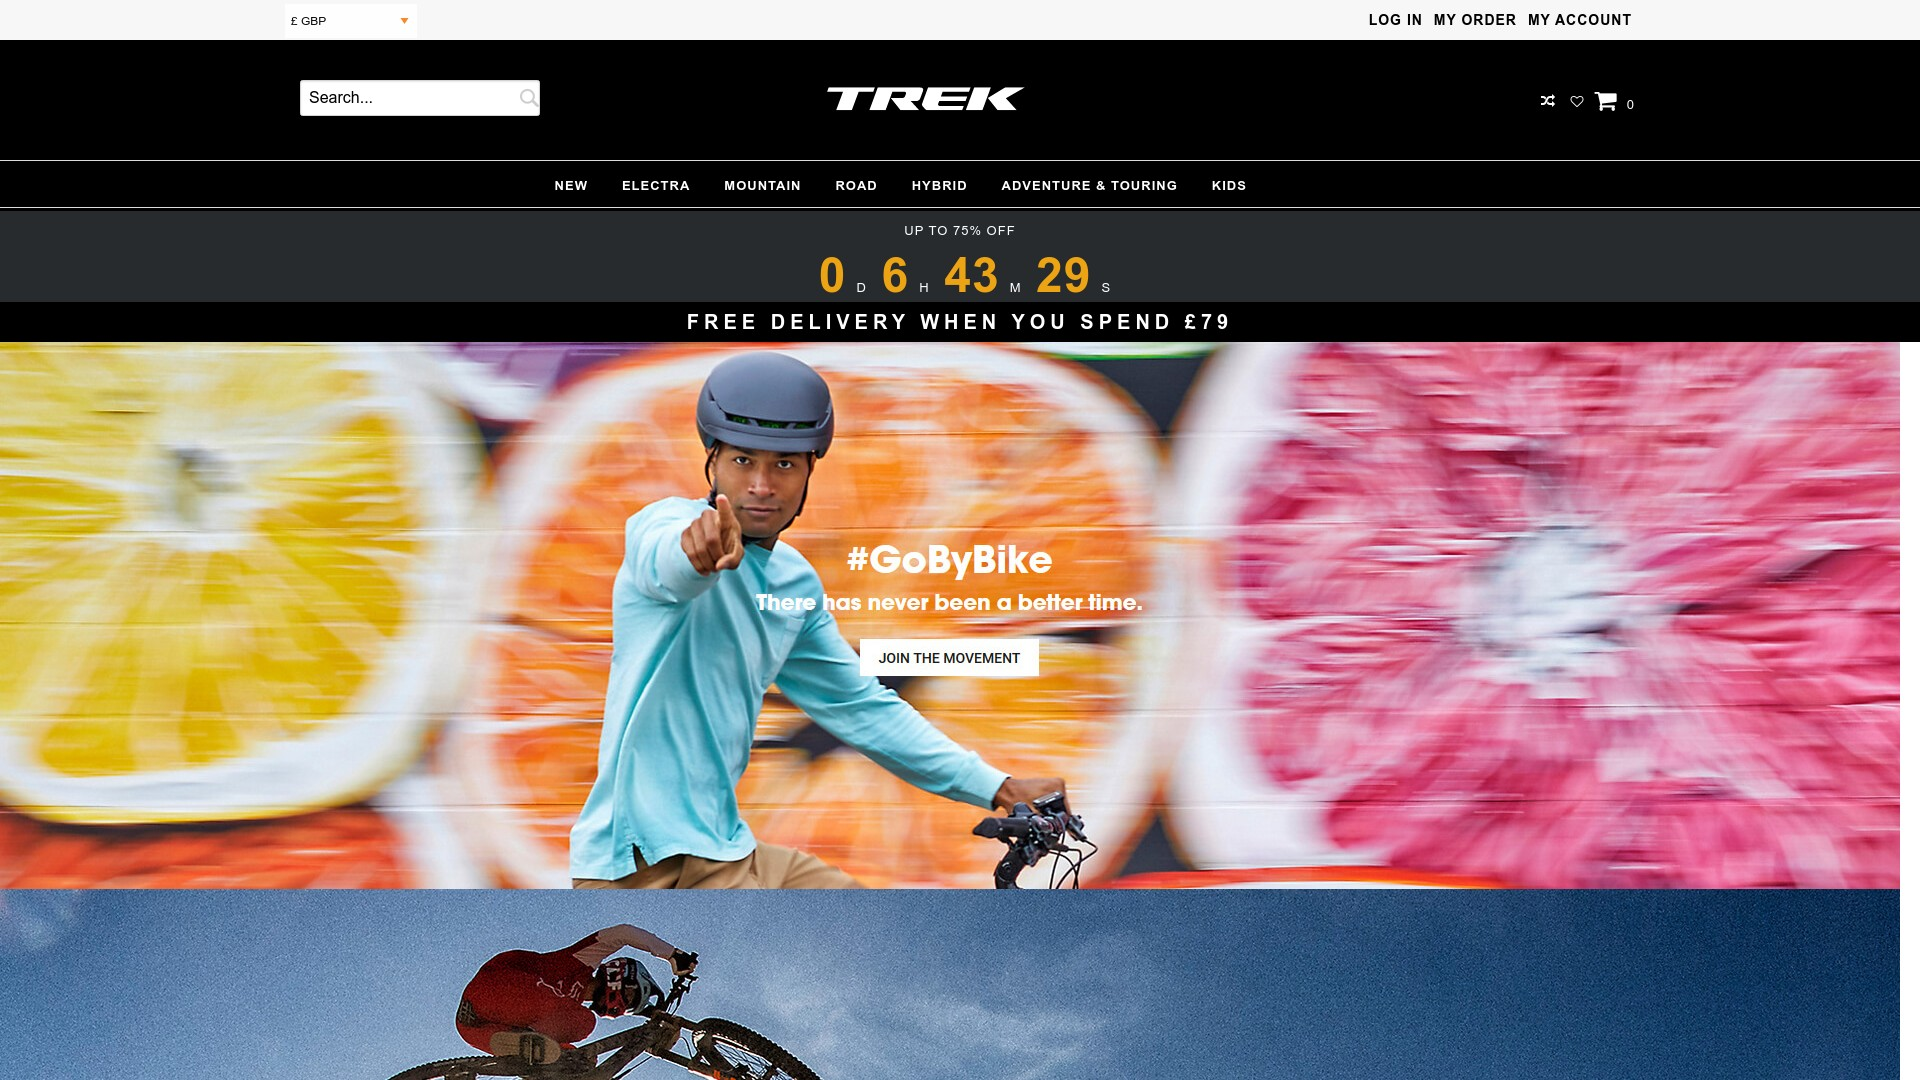 Is eu.bikes-rider.com a Scam? Review of the Online Store